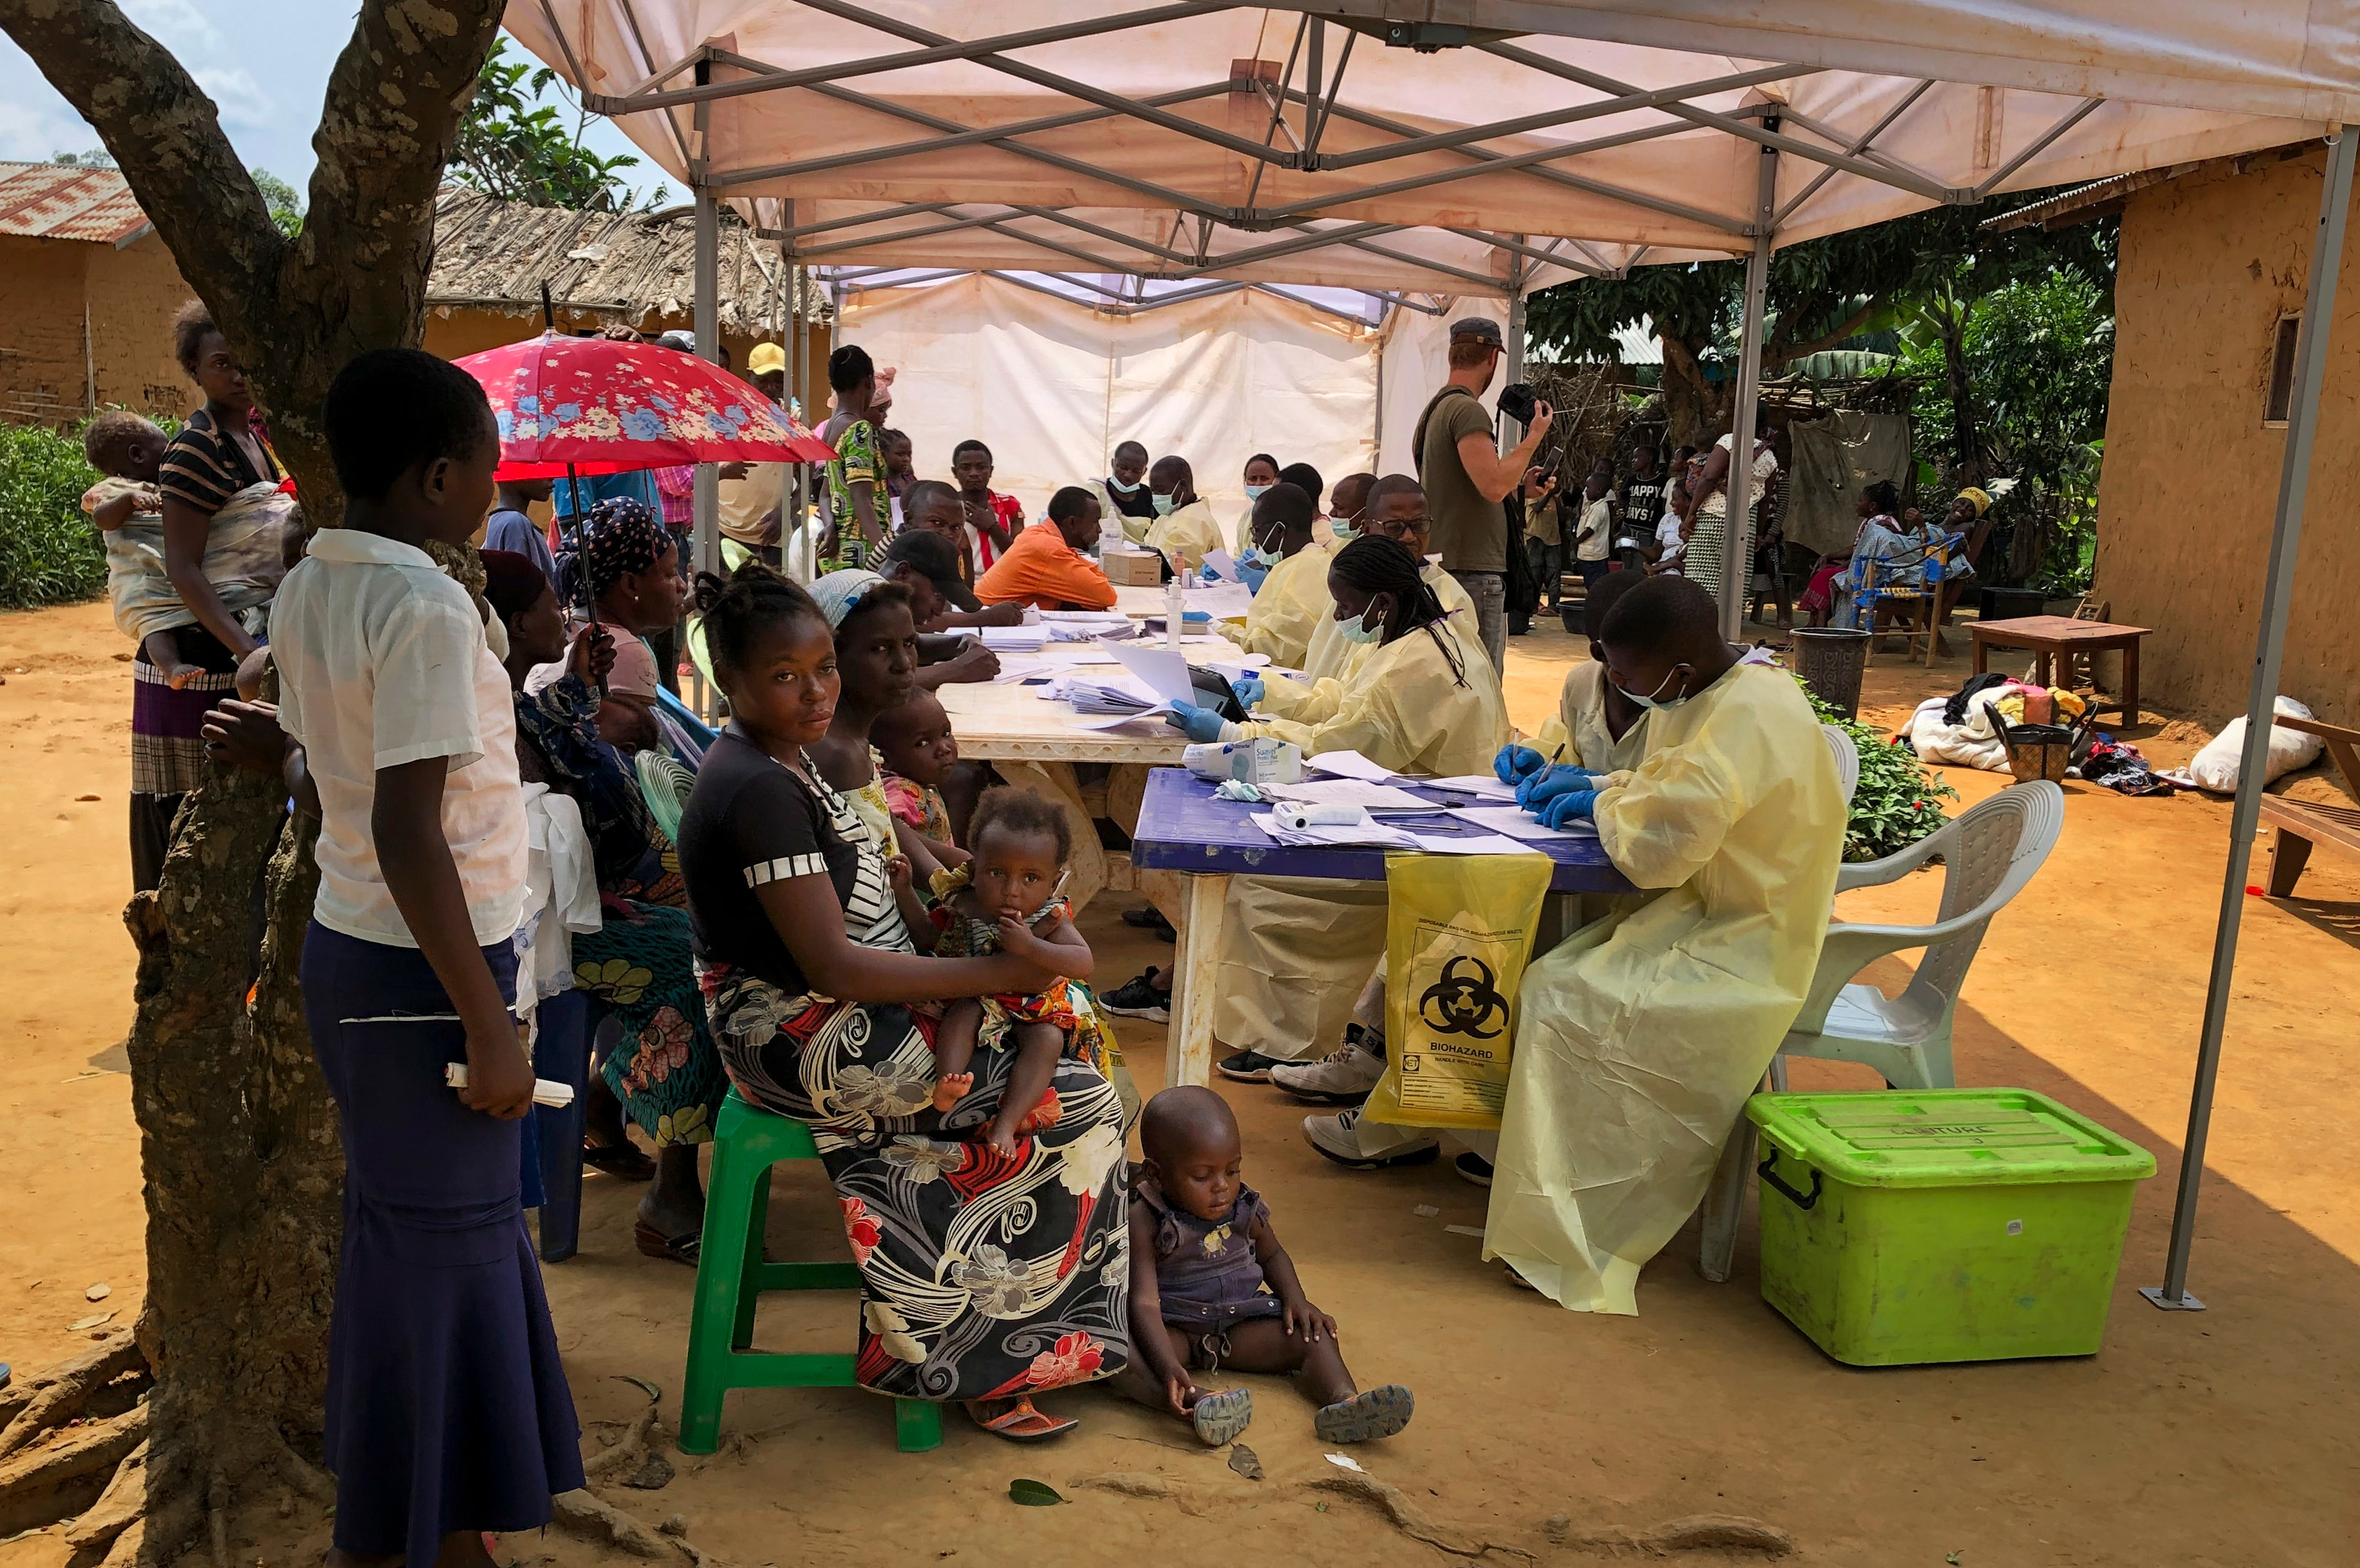 A woman and her children wait to receive Ebola vaccinations, in the village of Mabalako, in eastern Congo.